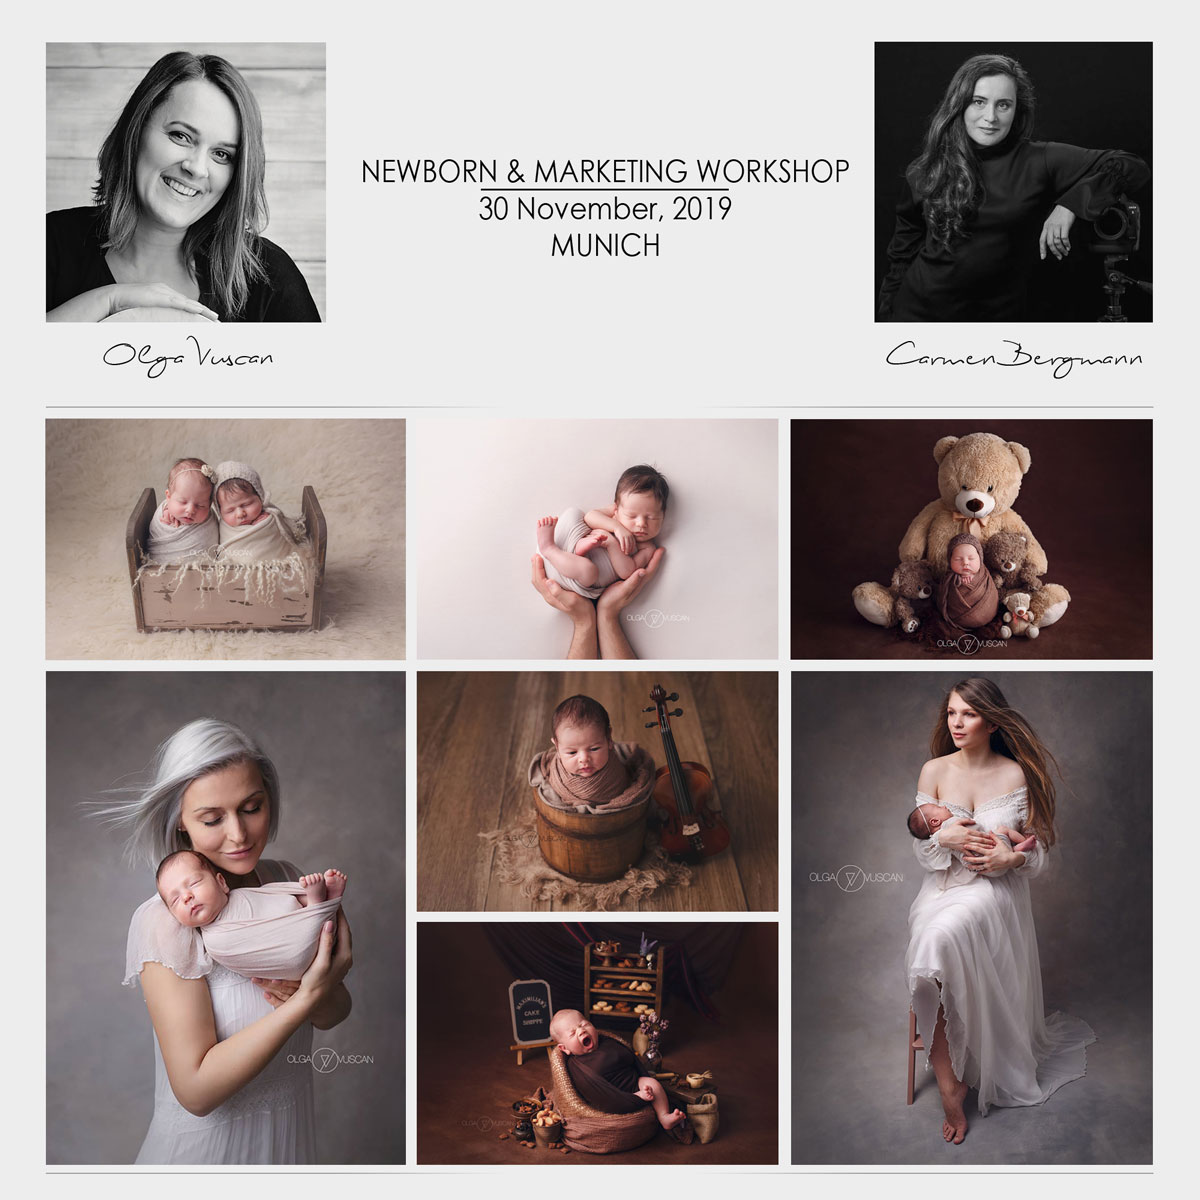 Carmen Bergmann Studio in Munich organizes Newborn Photography and Marketing Workshop by Olga Vuscan and Carmen Bergmann